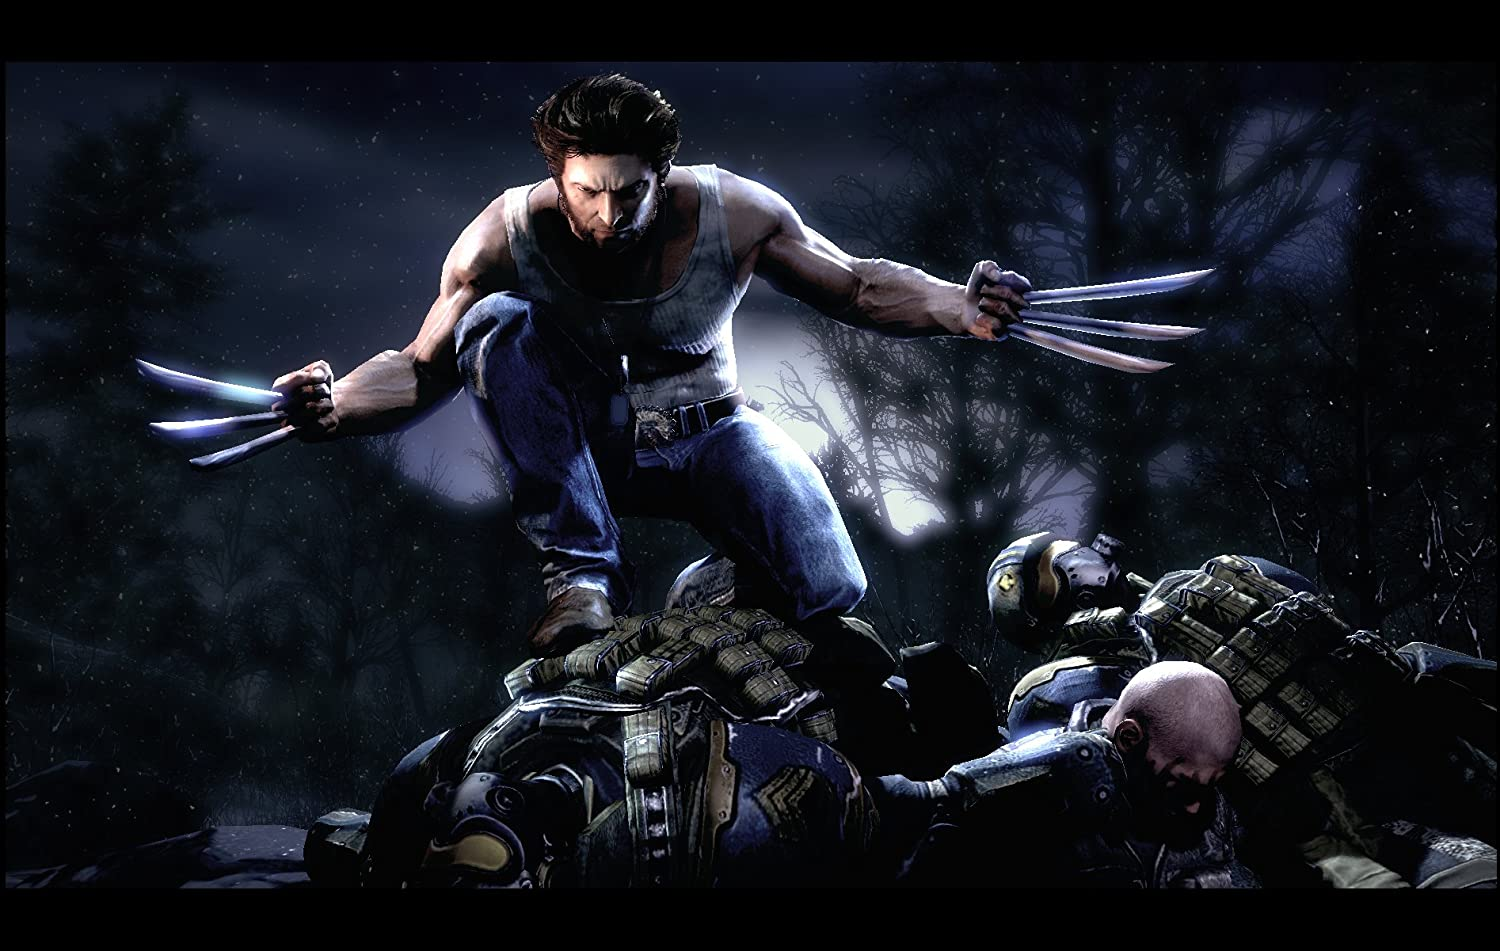 Amazon.com: X-Men Origins: Wolverine - Nintendo DS: Video Games